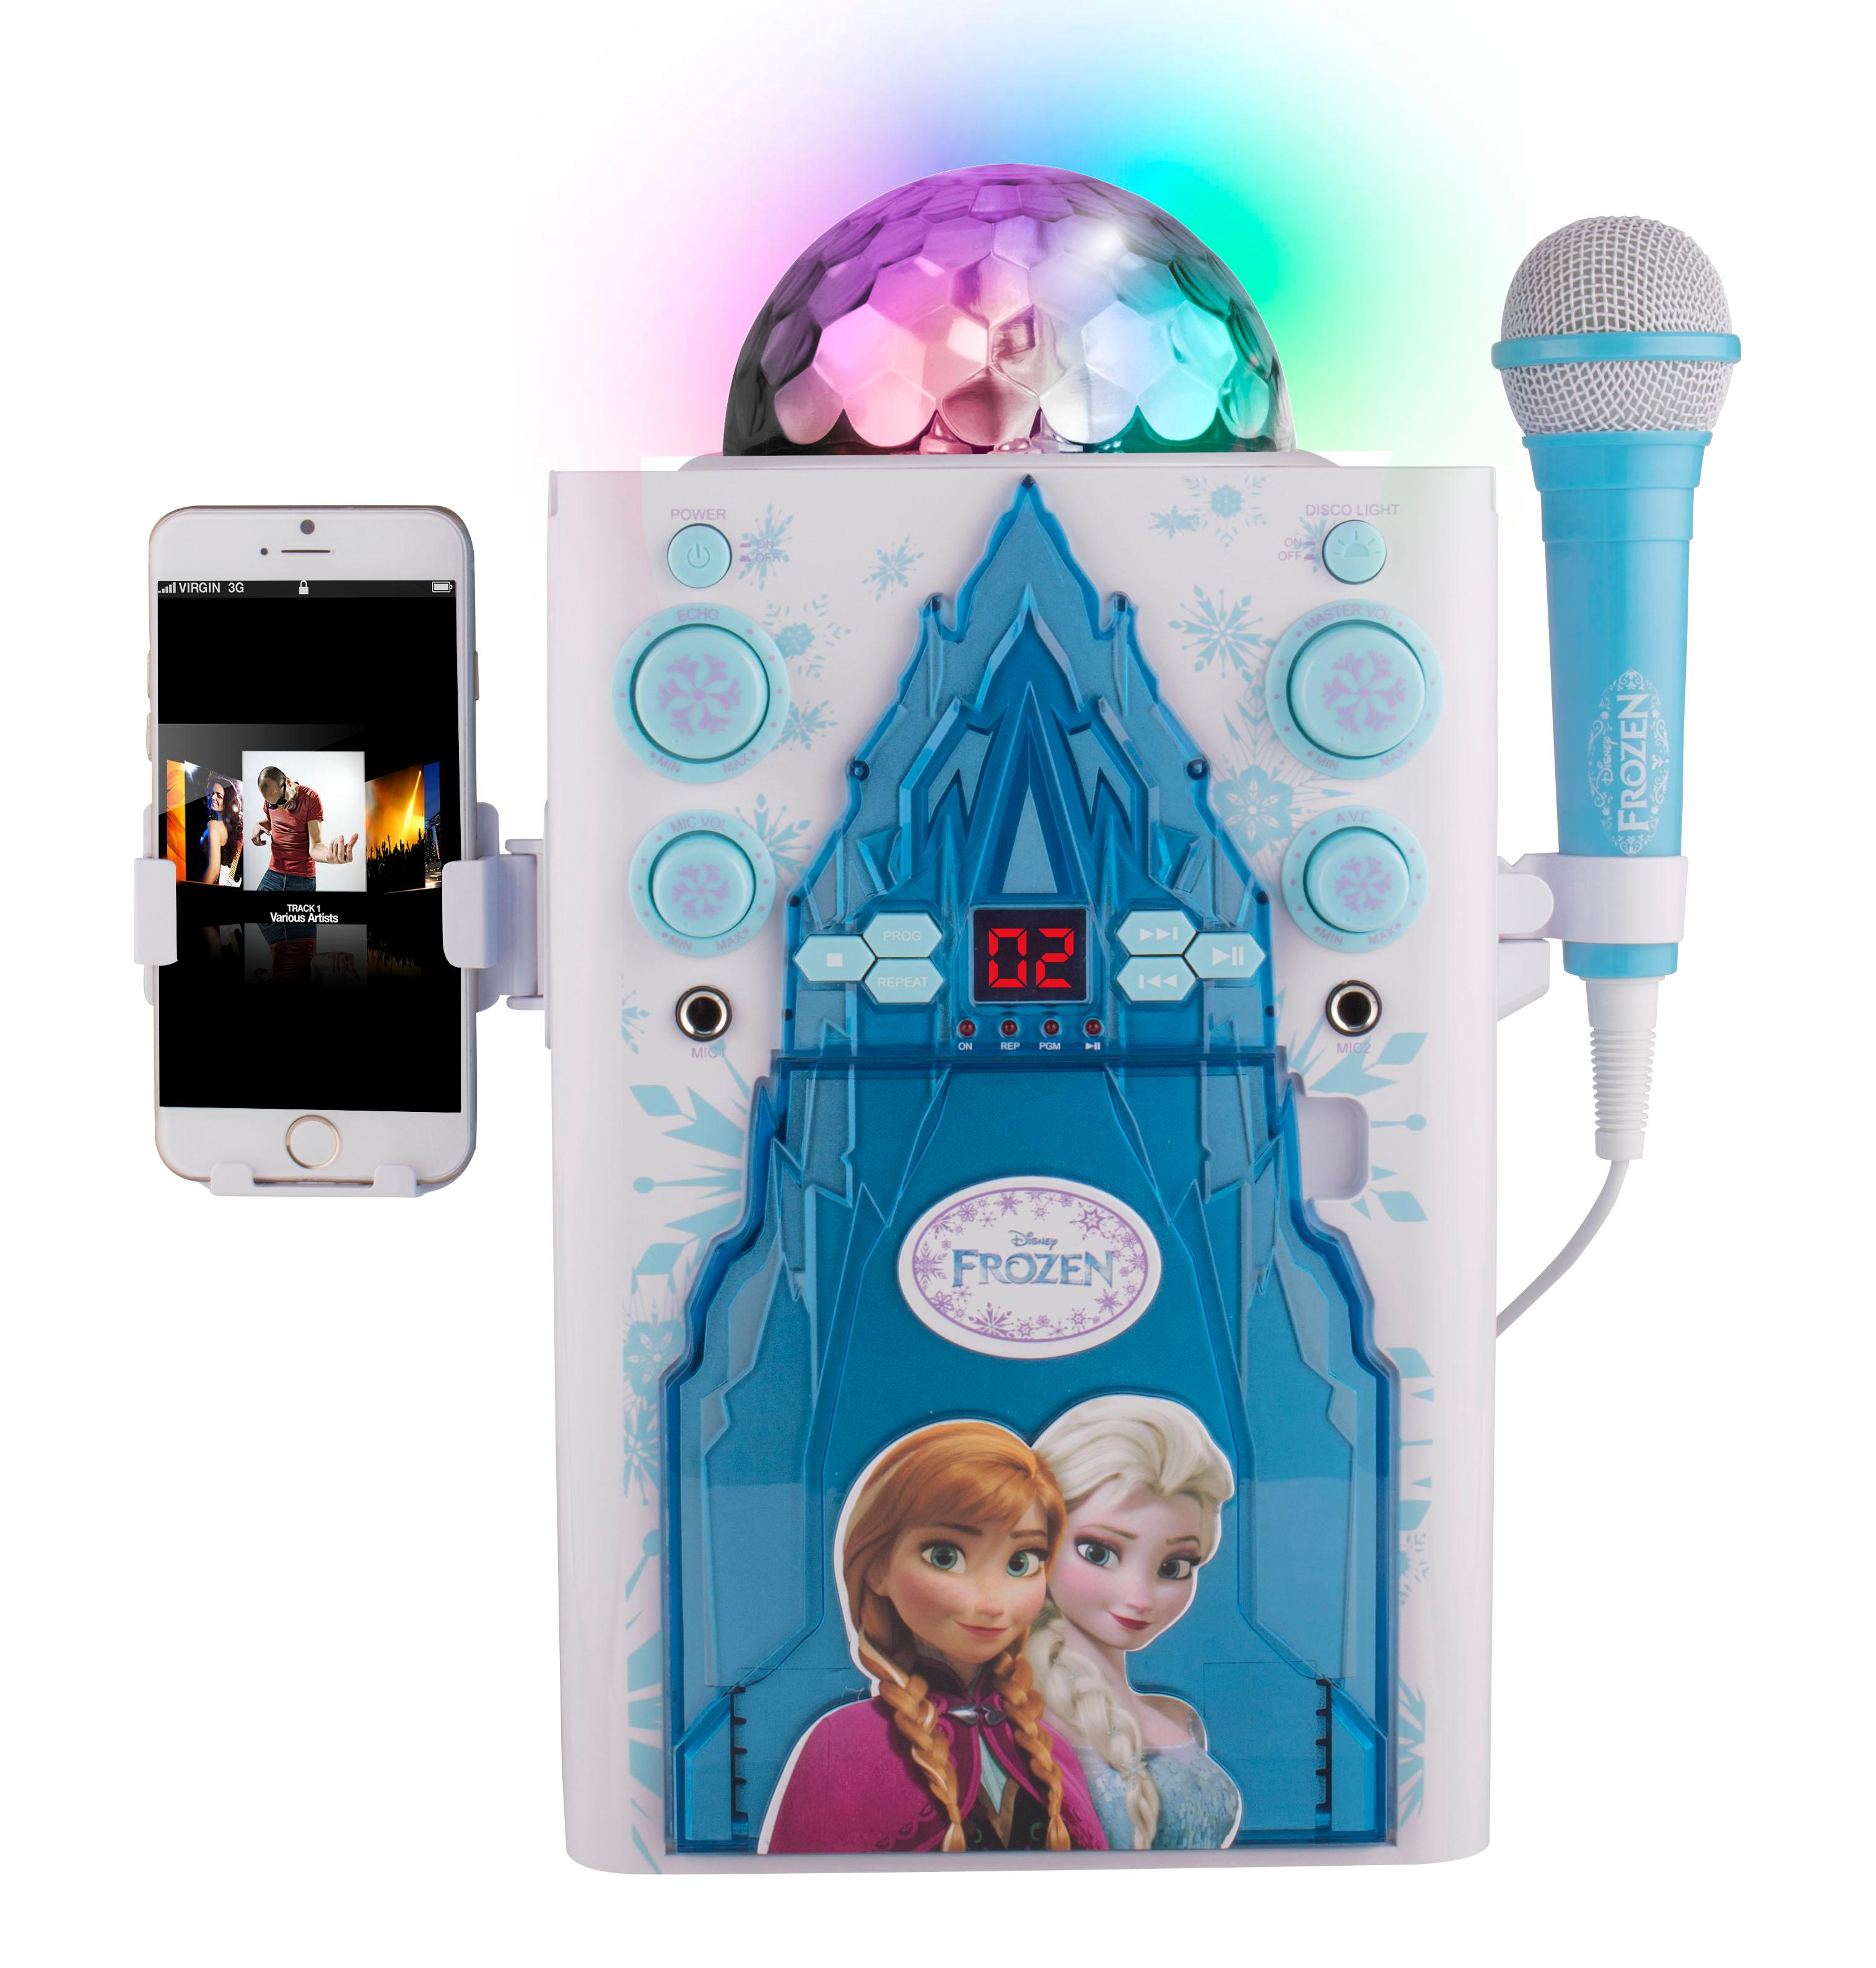 Amazon.com: Frozen Disco Ball Karaoke, KO2-06027: Toys & Games